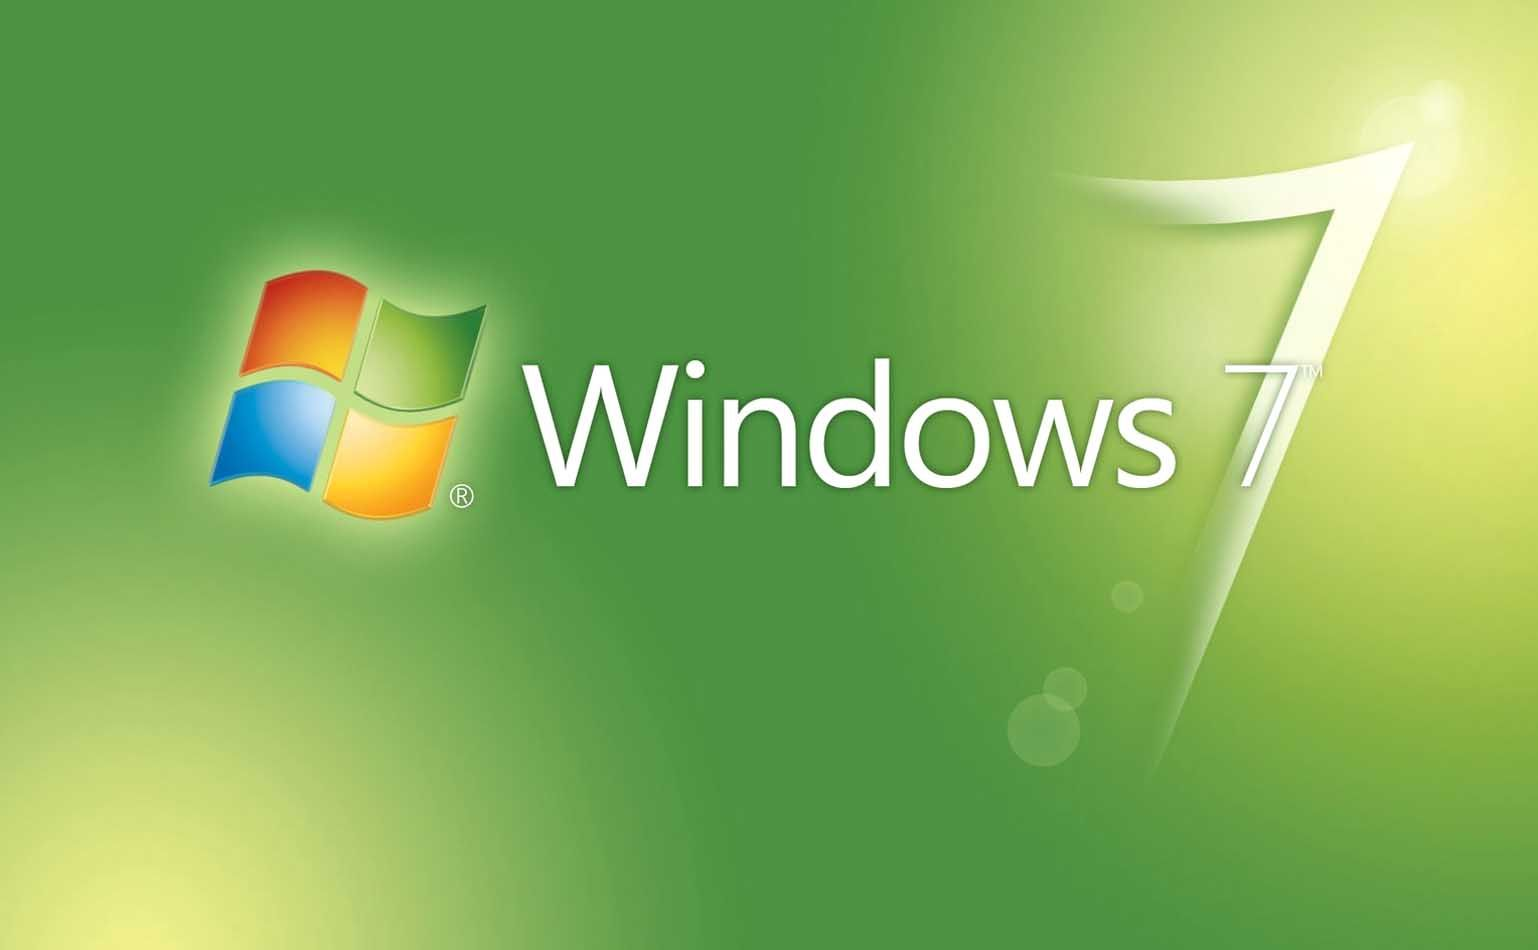 Windows 7 Ultimate Wallpapers Free Download Group 77